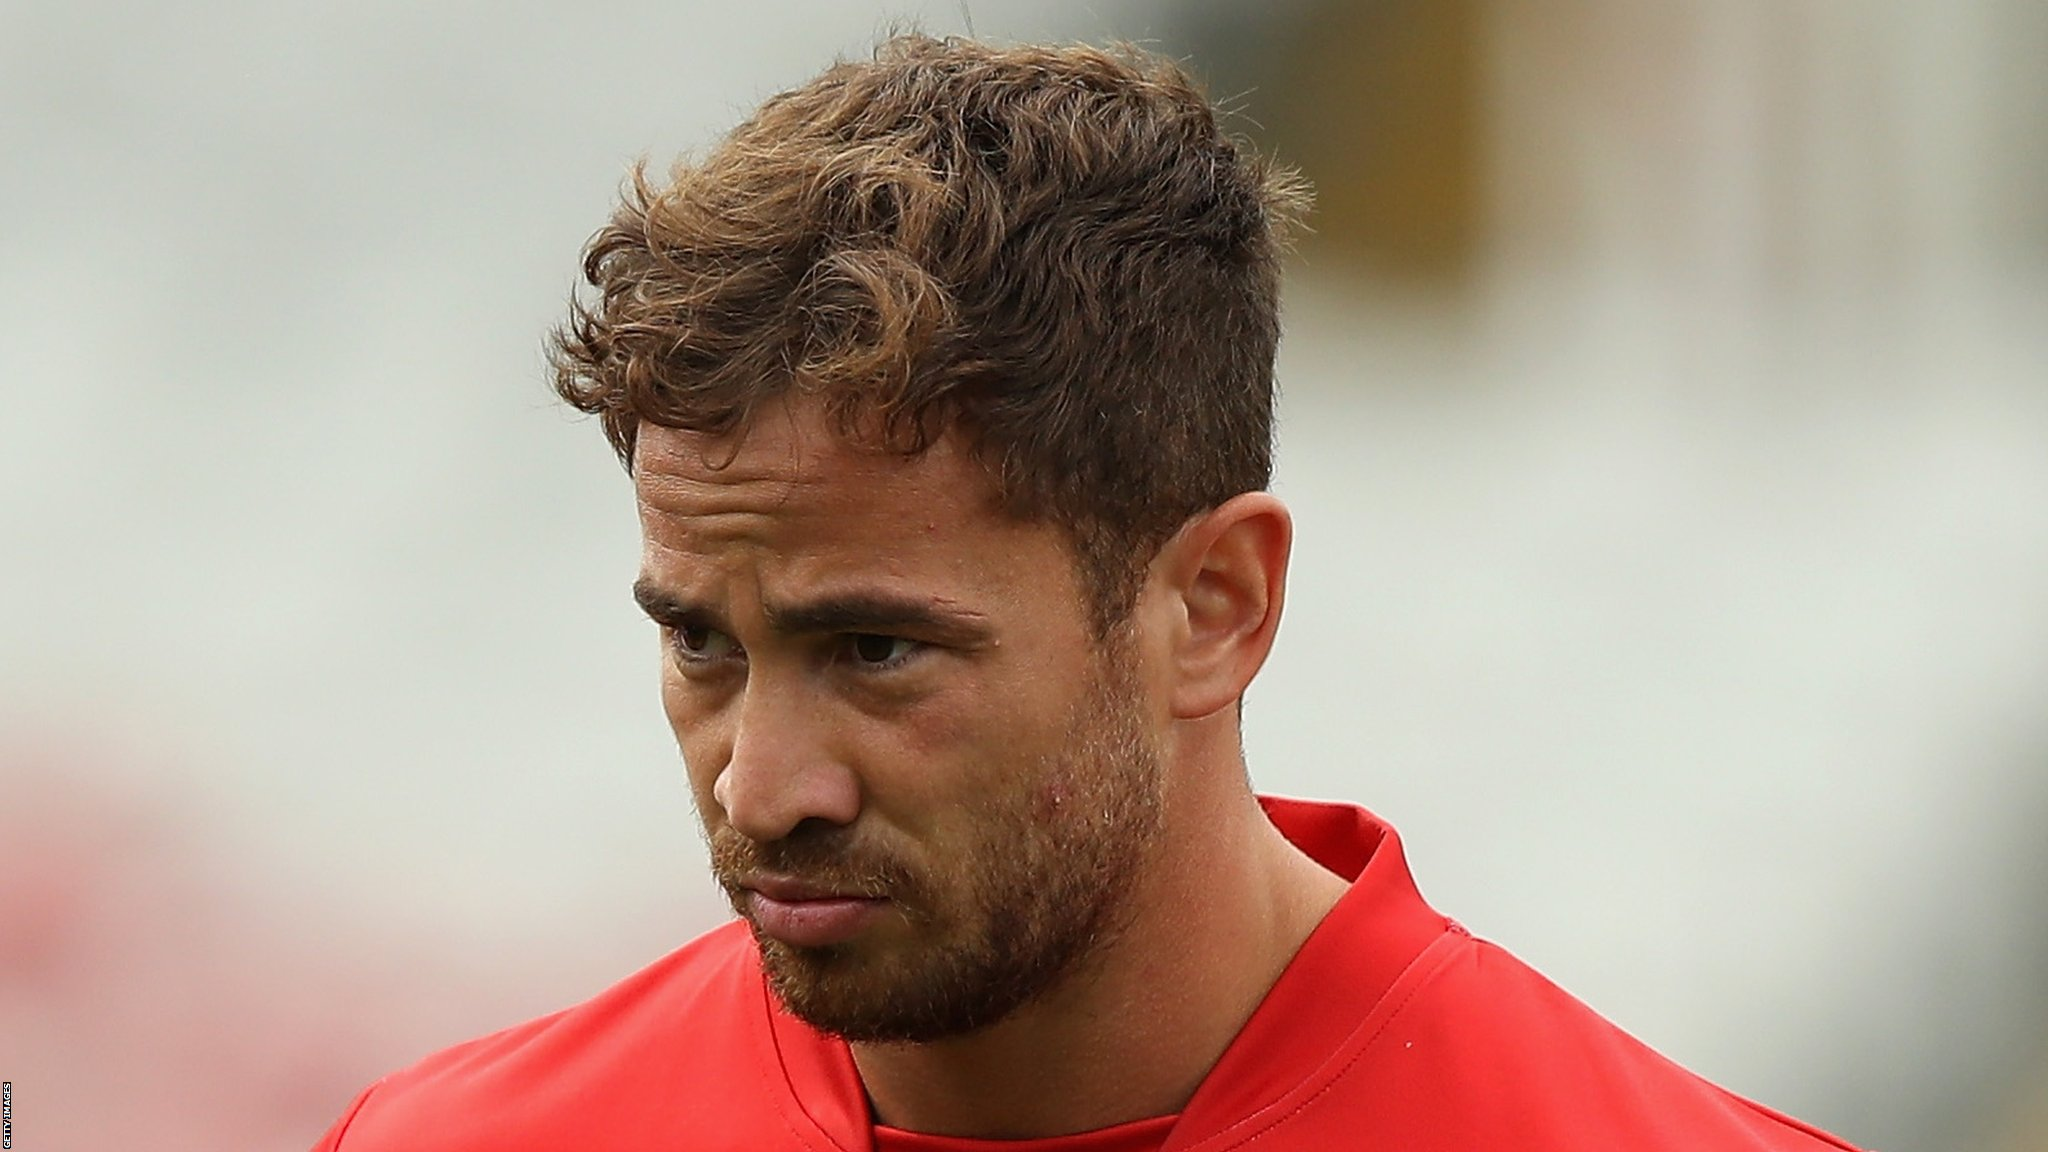 Danny Cipriani: Gloucester fine England fly-half £2,000 after nightclub incident